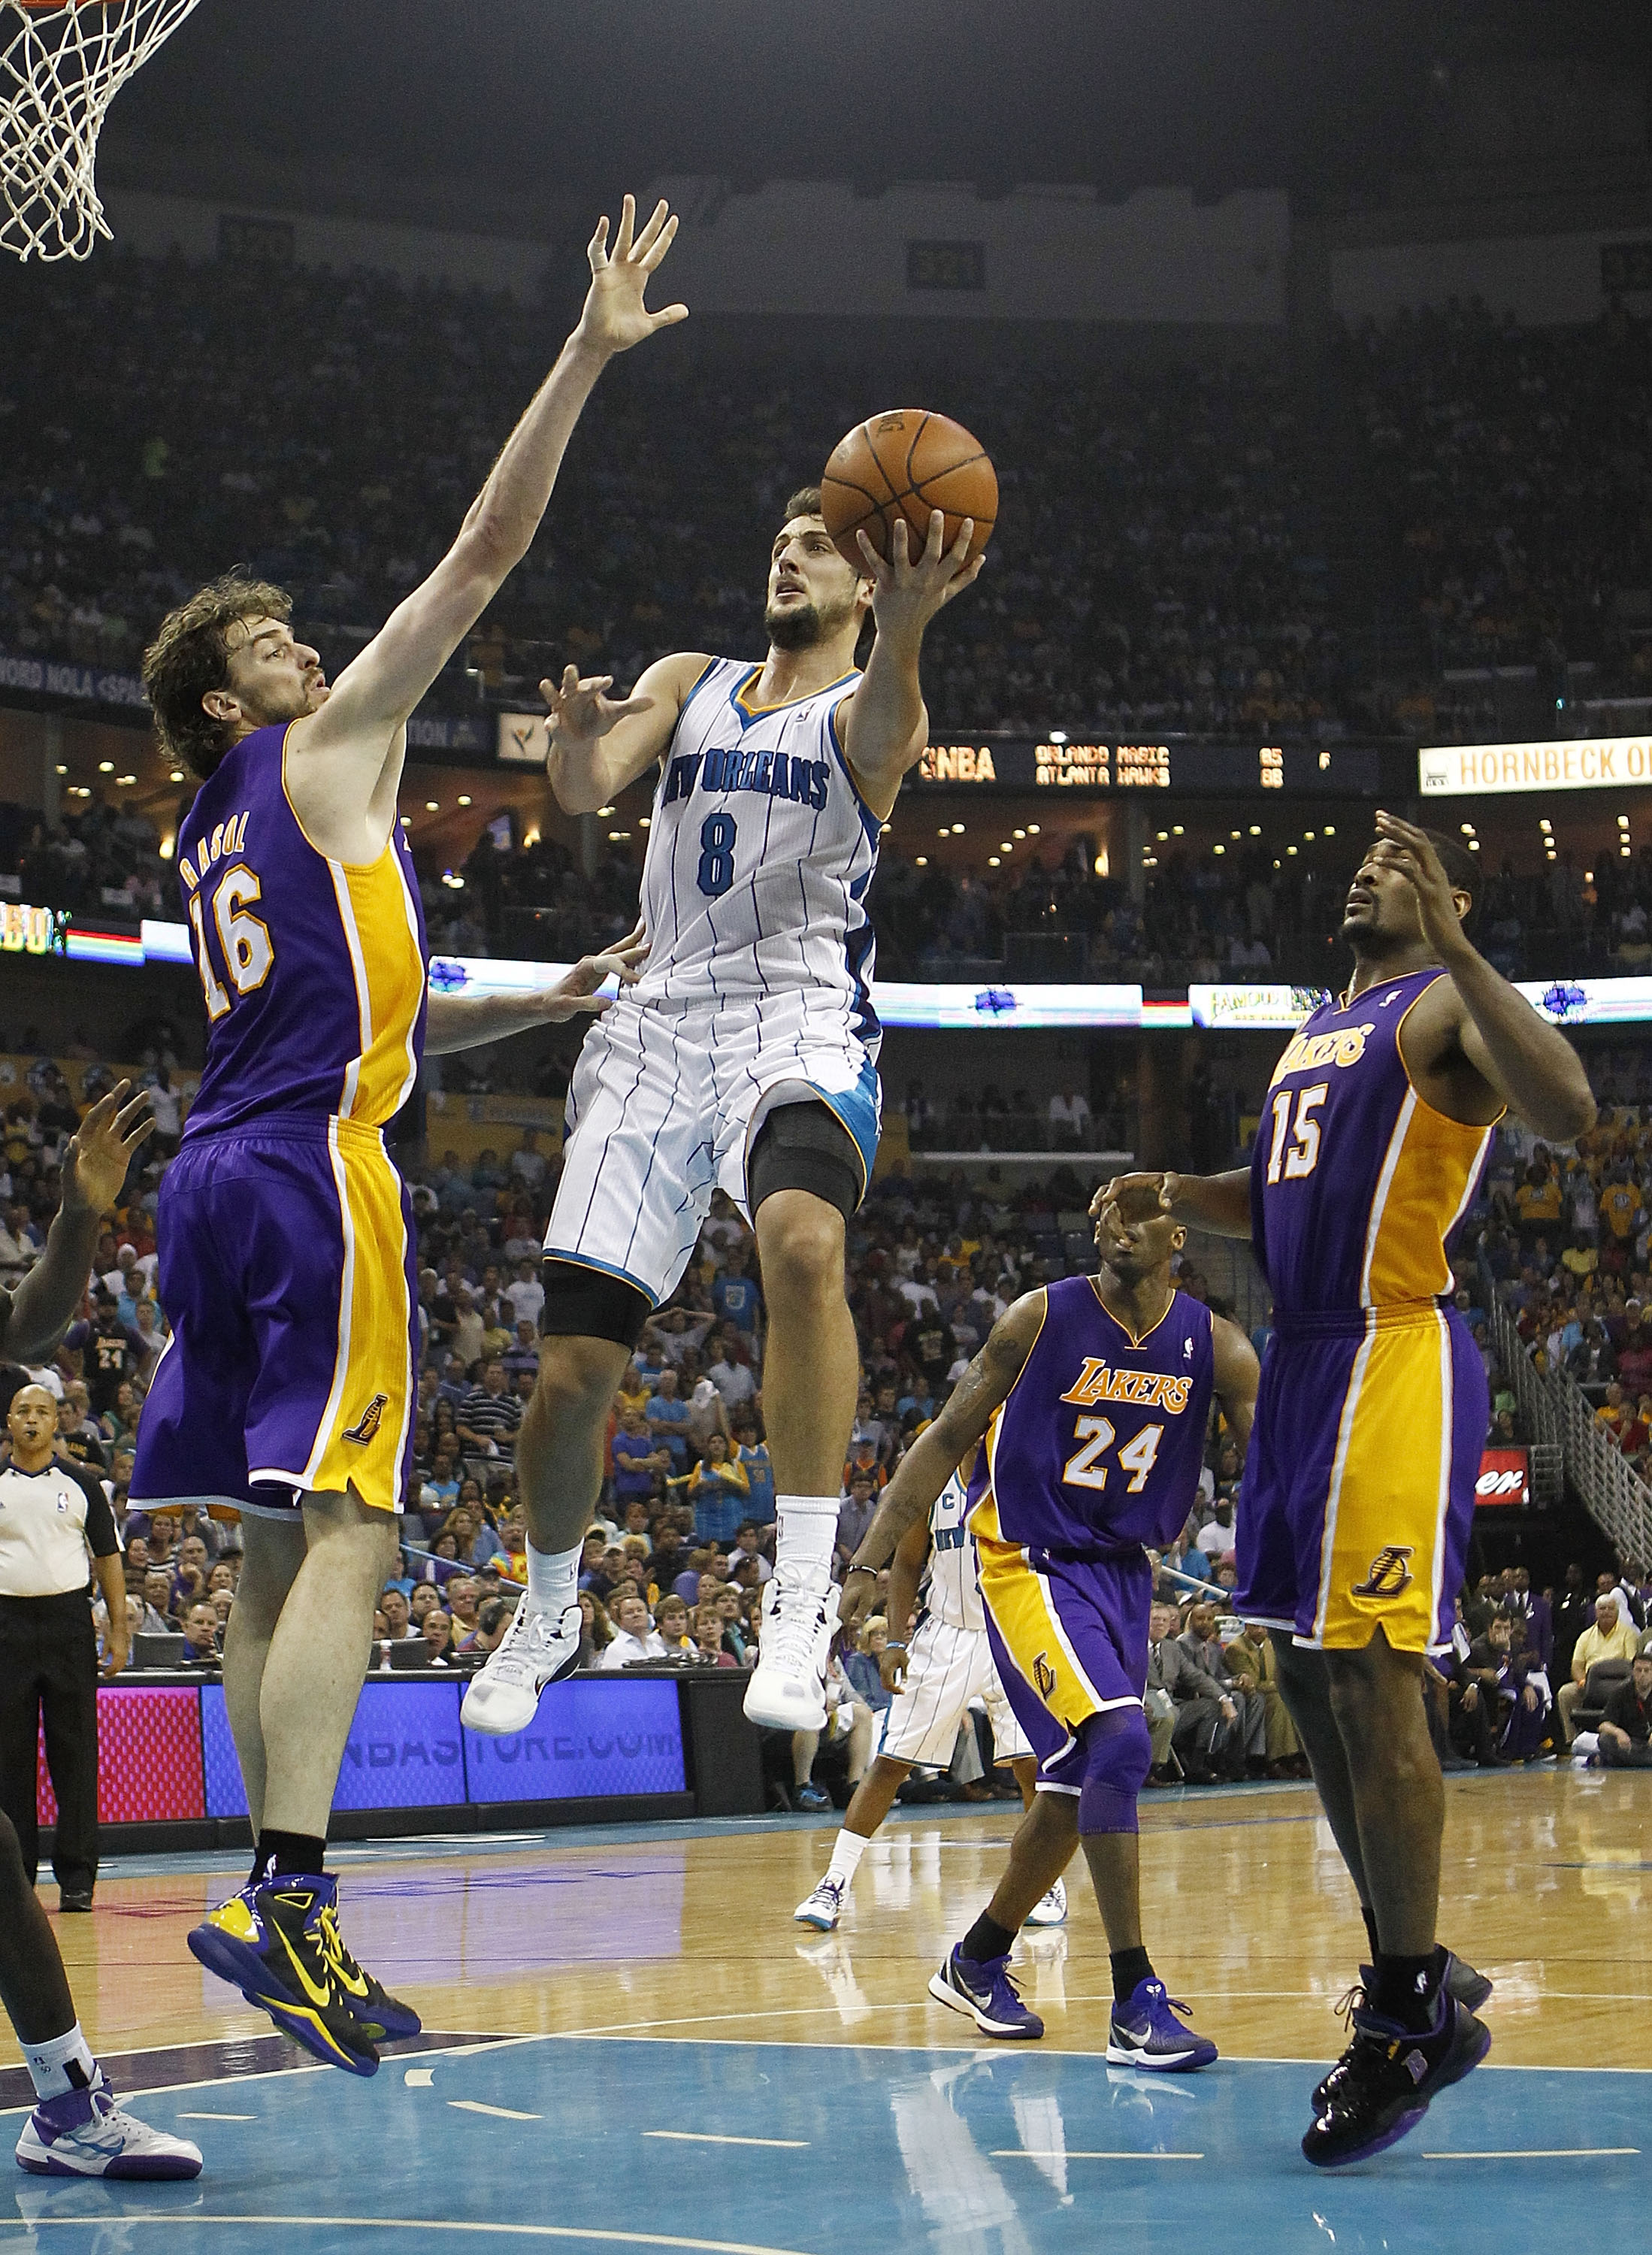 NEW ORLEANS - APRIL 24:  Marco Belinelli #8 of the New Orleans Hornets shoots over Pau Gasol #16 of the Los Angeles Lakers in Game Four of the Western Conference Quarterfinals in the 2011 NBA Playoffs at New Orleans Arena on April 24, 2011 in New Orleans,